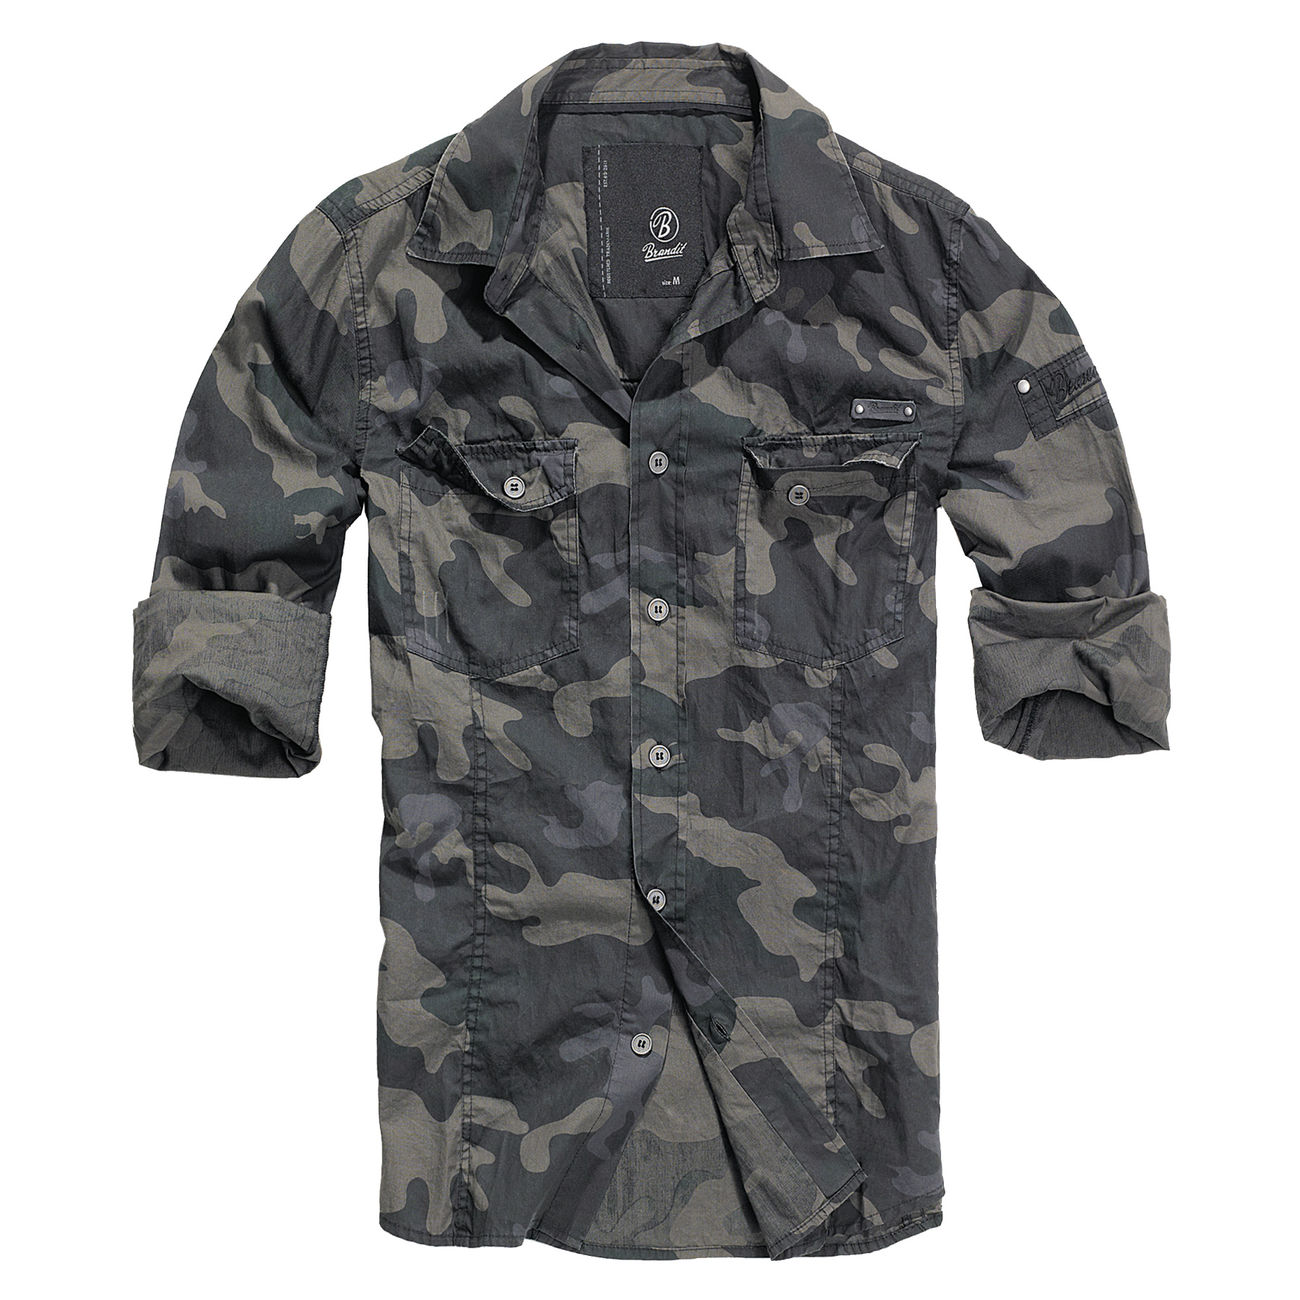 Brandit Hemd Slim Fit Shirt dark camo 1